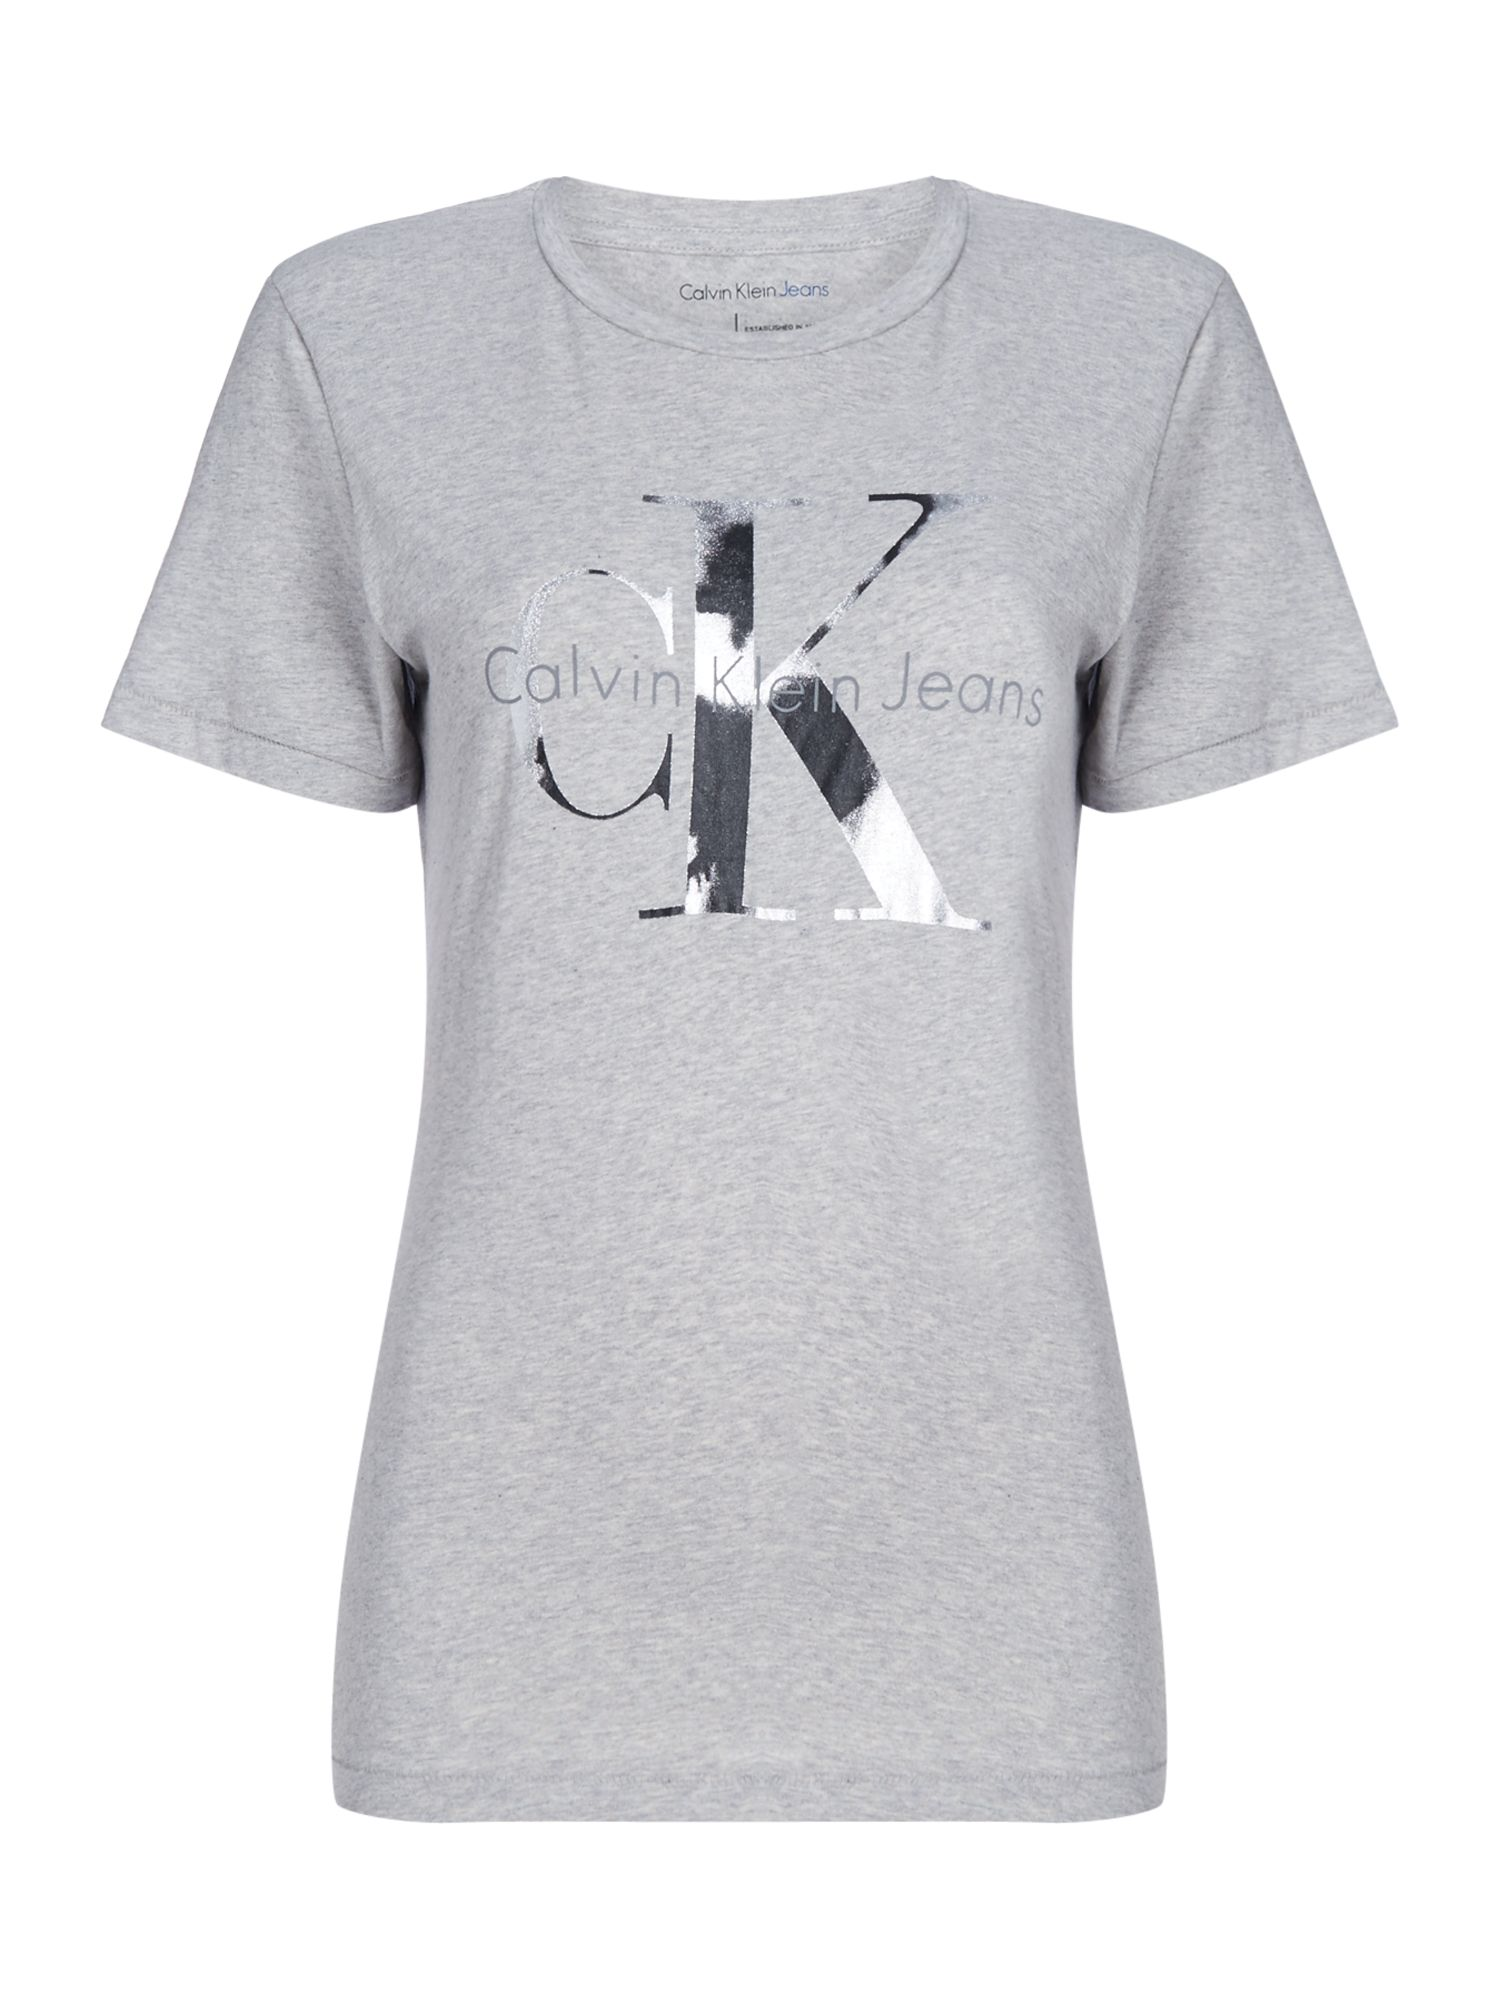 Calvin Klein Short Sleeves CK Logo Tee Shirt, Grey